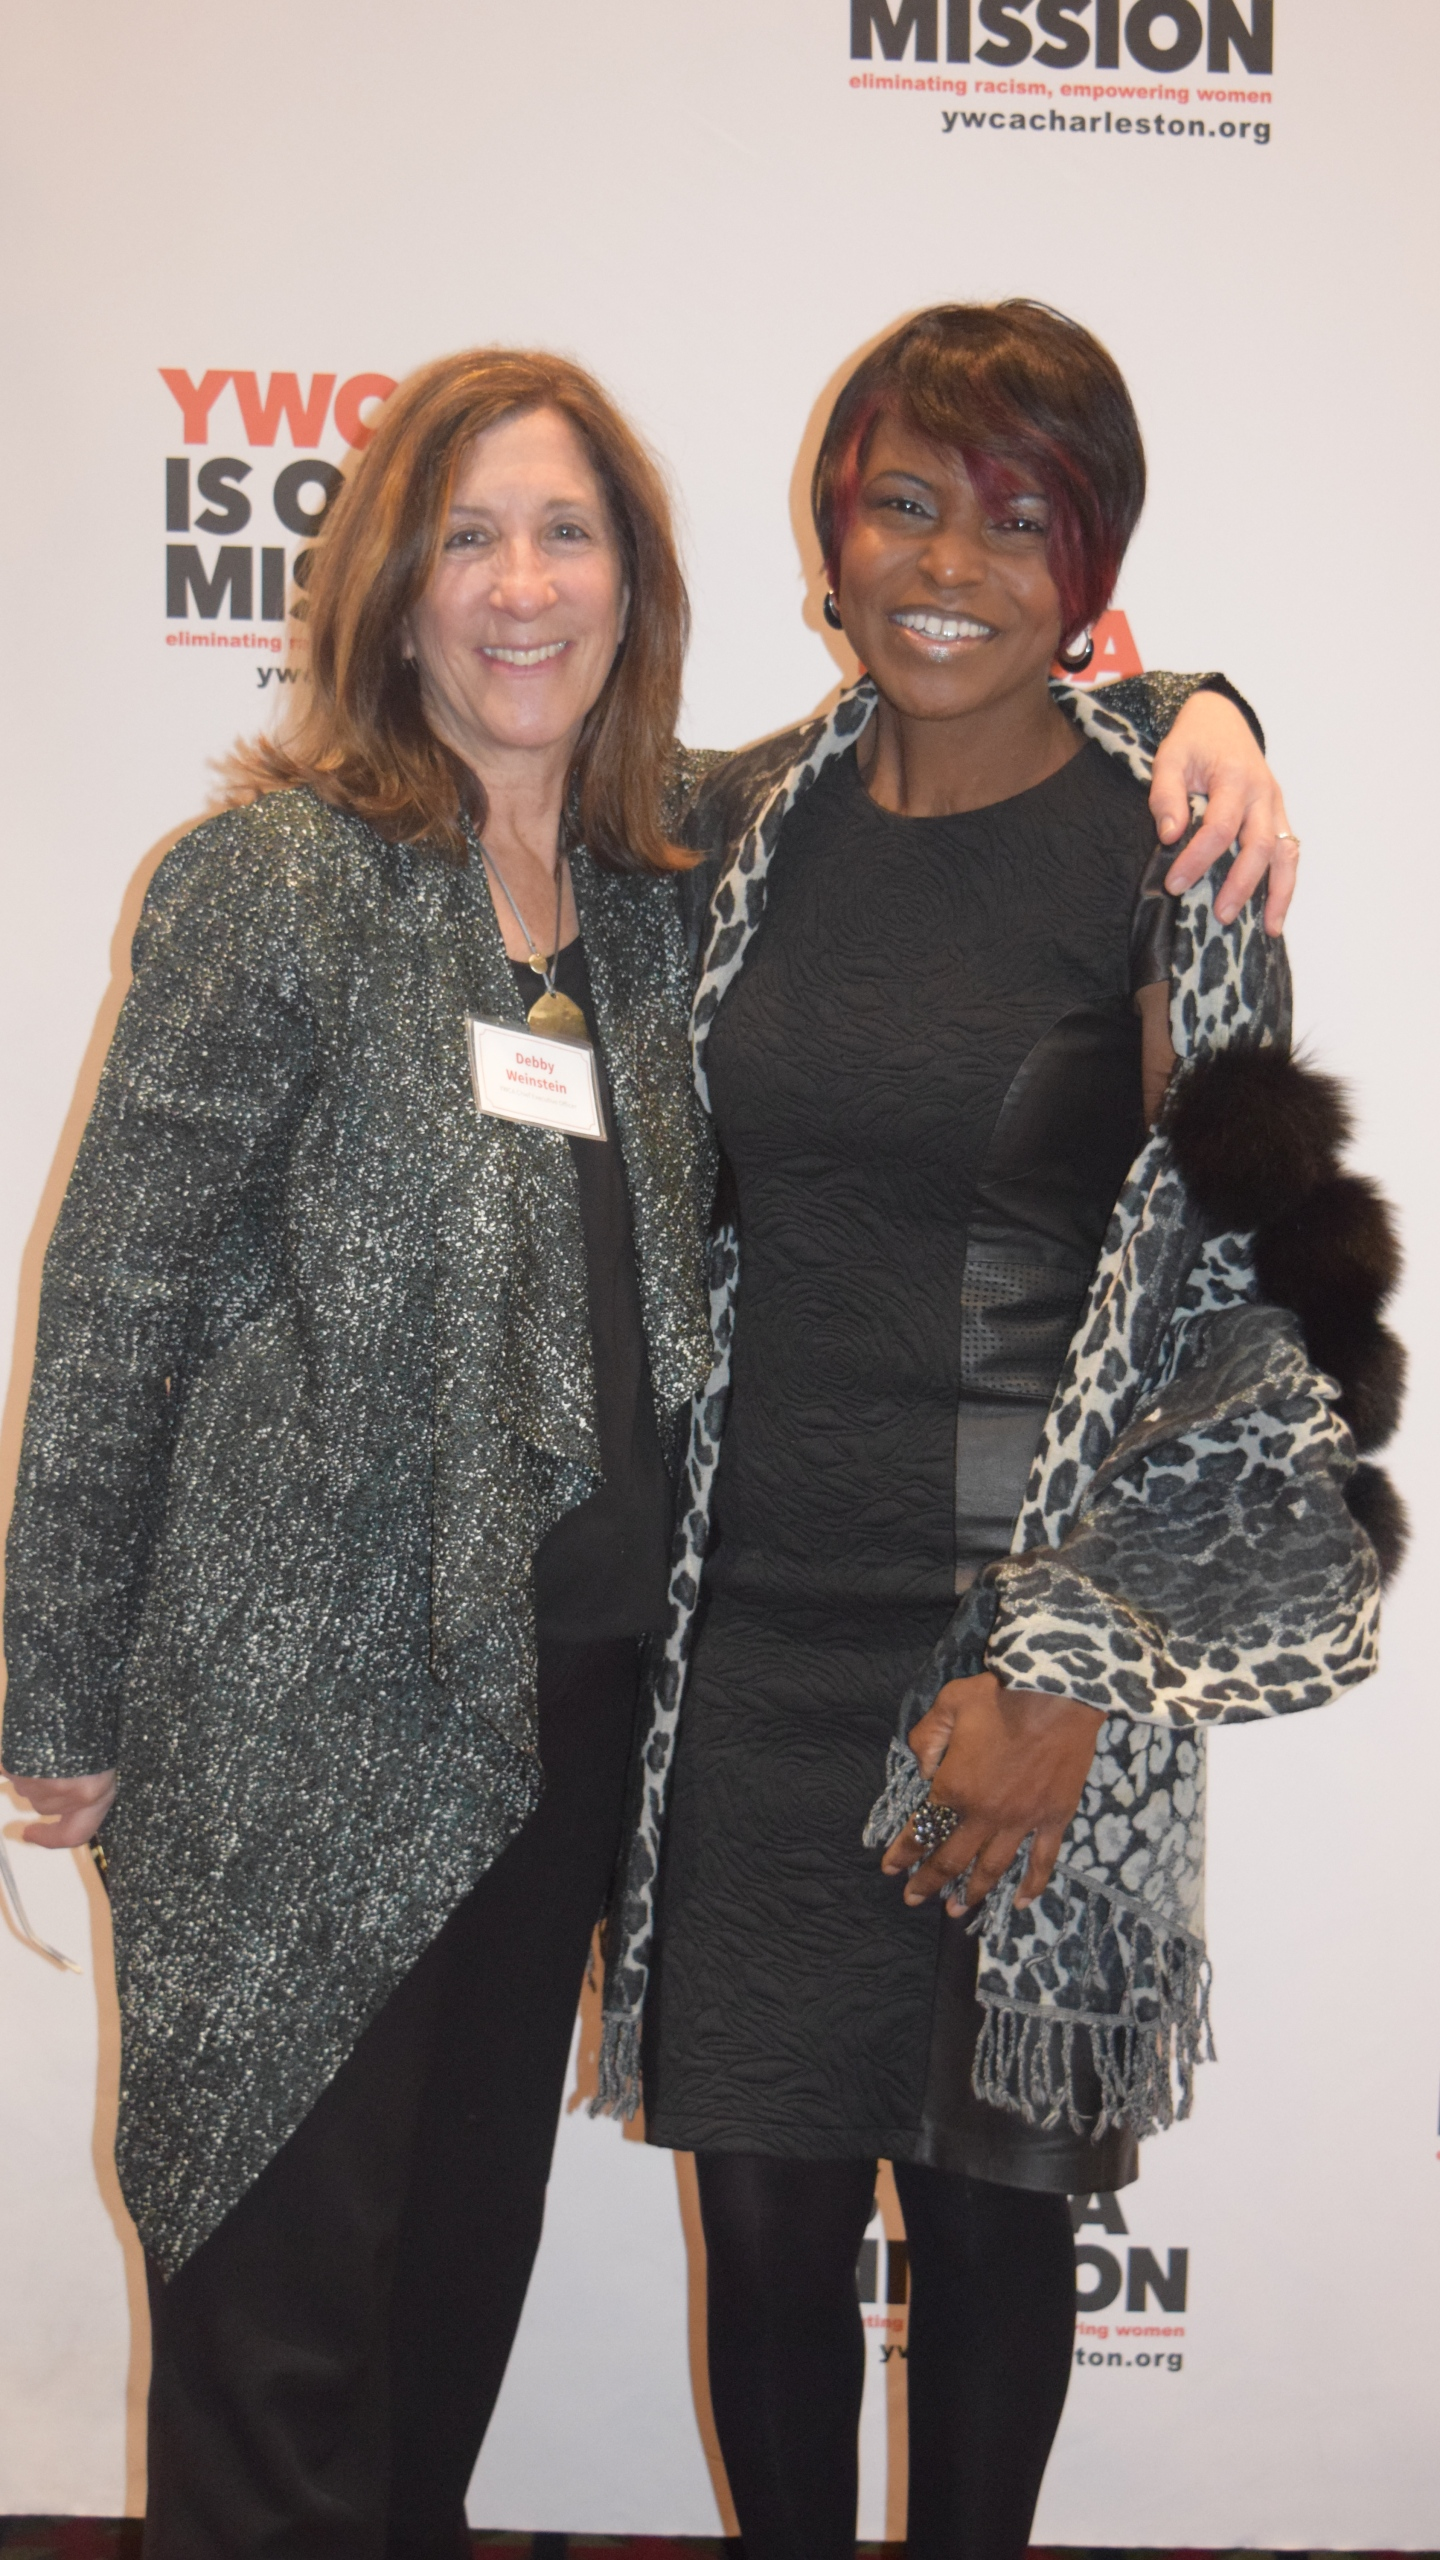 Sharon with YWCA CEO Debby Weinstein